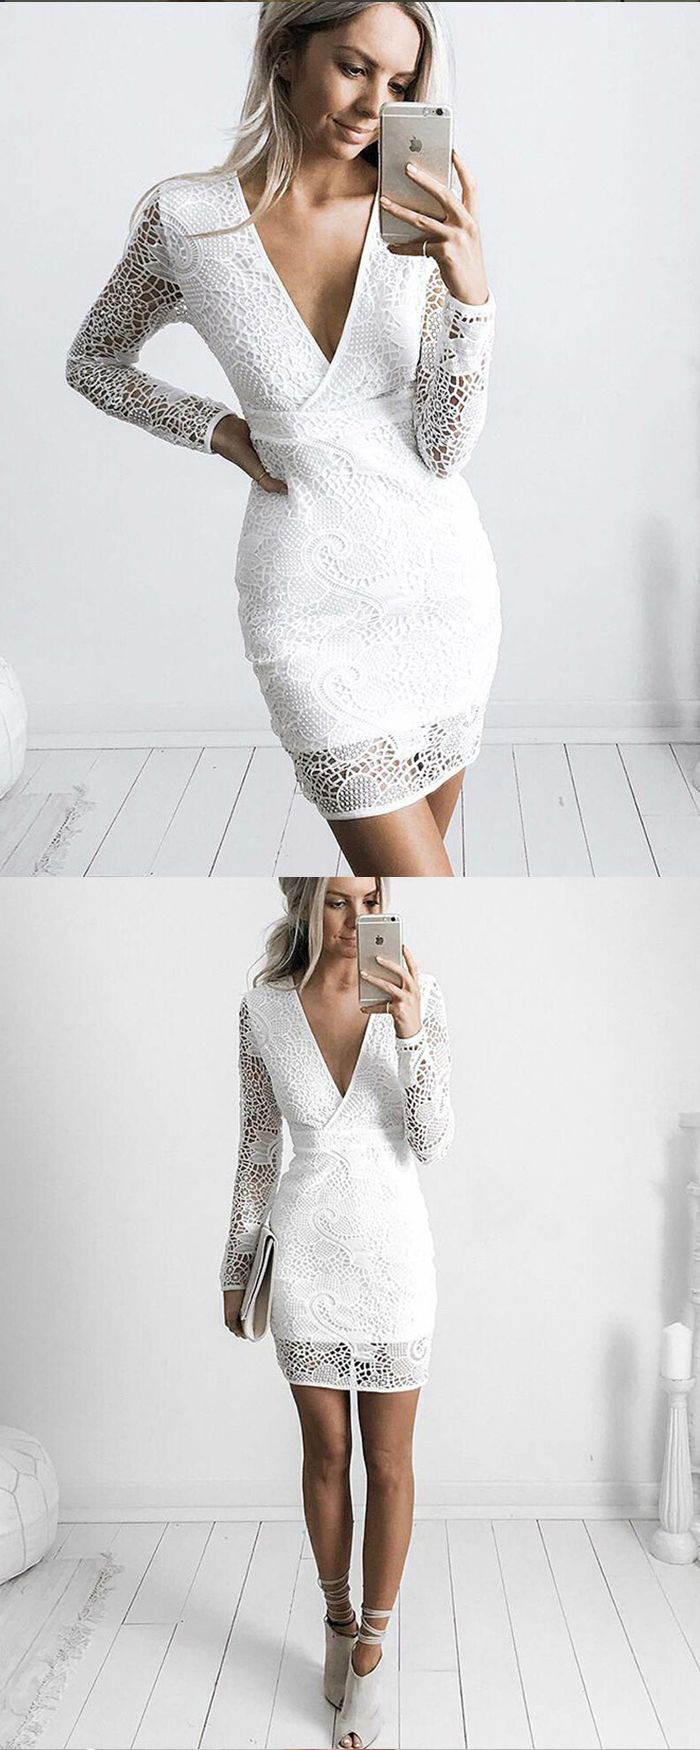 White V Neck Lace Tight Graduation Dress With Long Sleeves Hd3224 Tight Party Dresses Dresses Homecoming Dresses [ 1750 x 700 Pixel ]